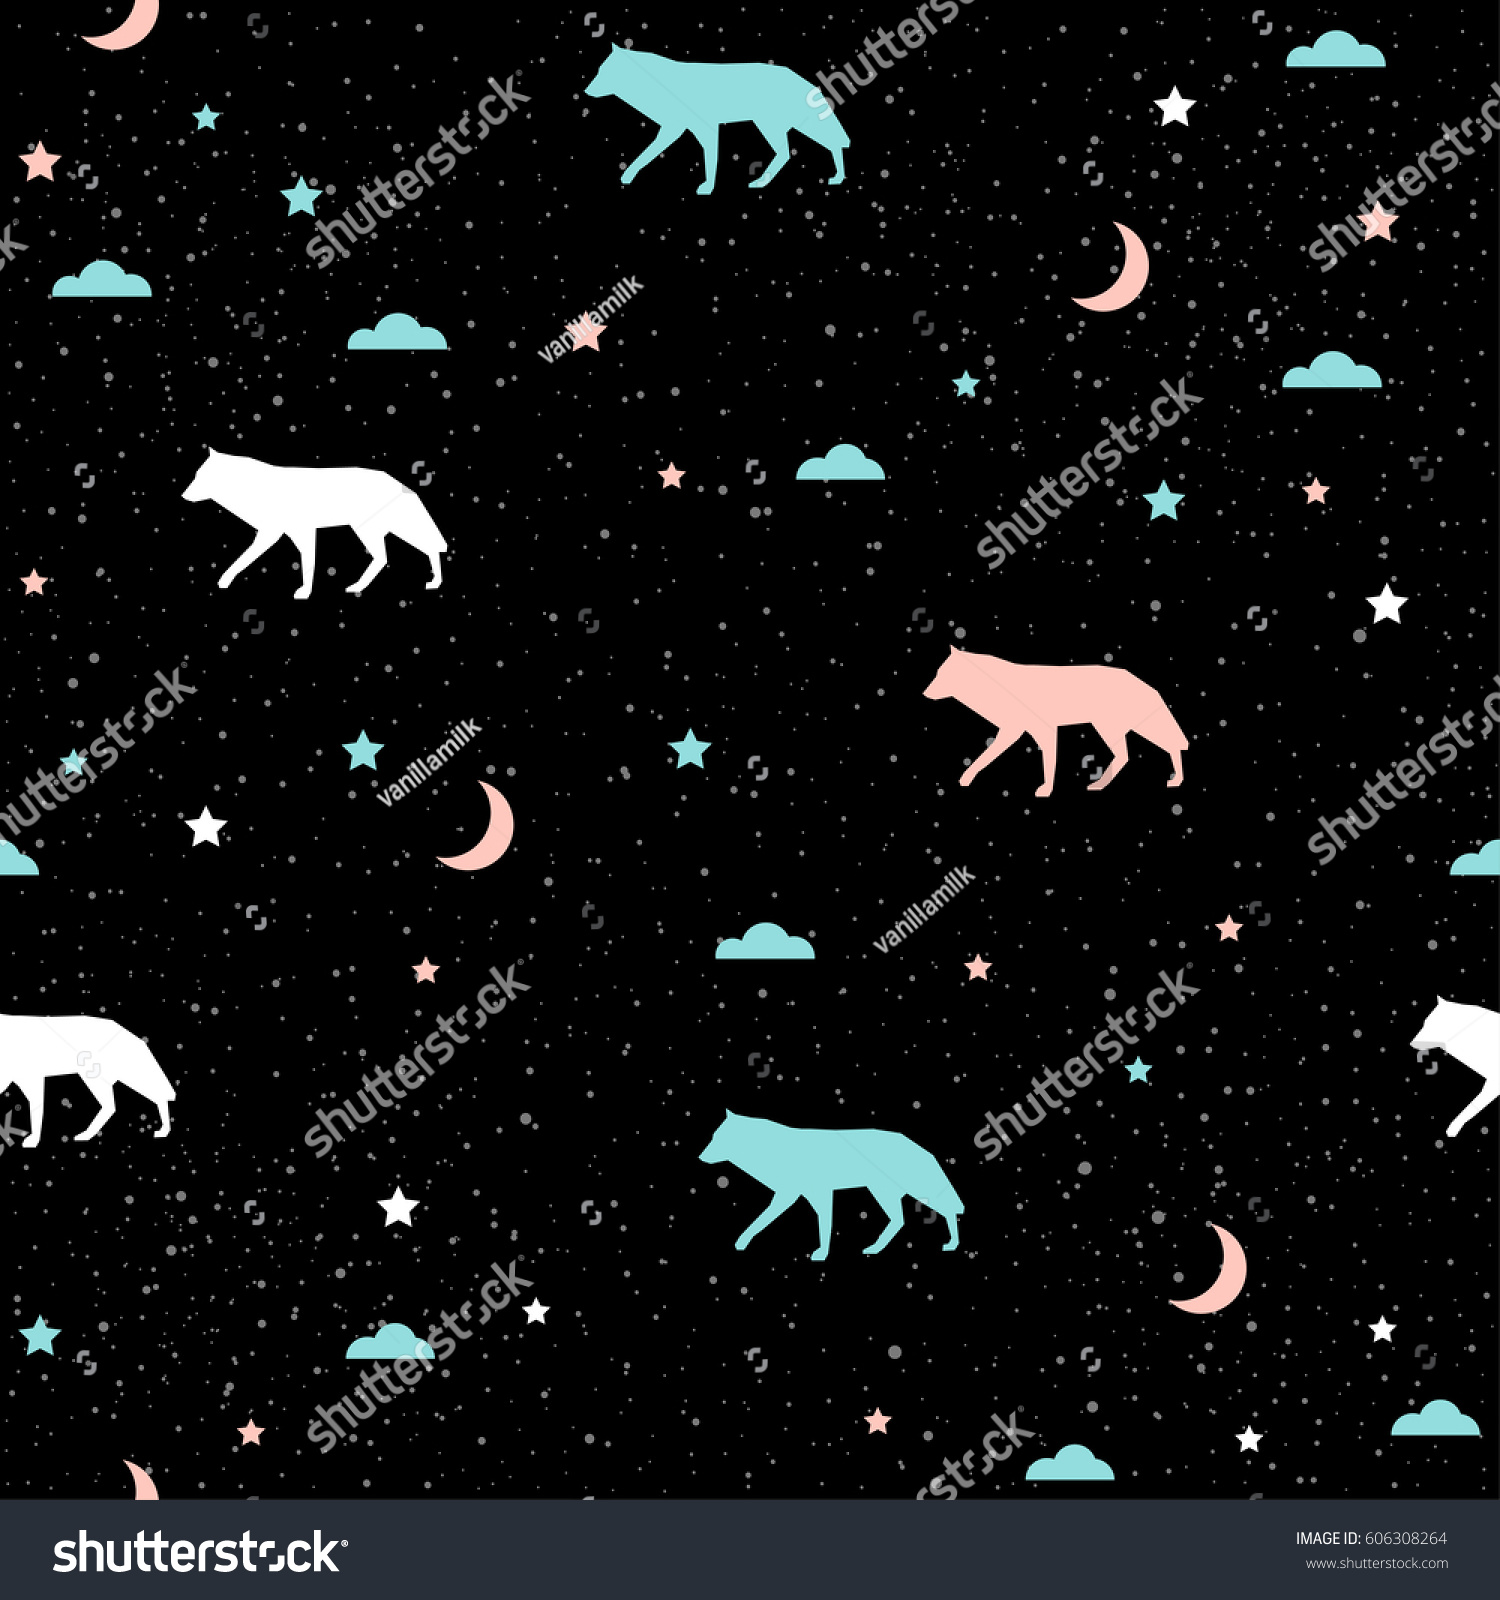 Great Wallpaper Abstract Wolf - stock-vector-handmade-wolf-seamless-pattern-background-abstract-blue-white-and-pink-wolf-pattern-for-card-606308264  HD_145149 .jpg